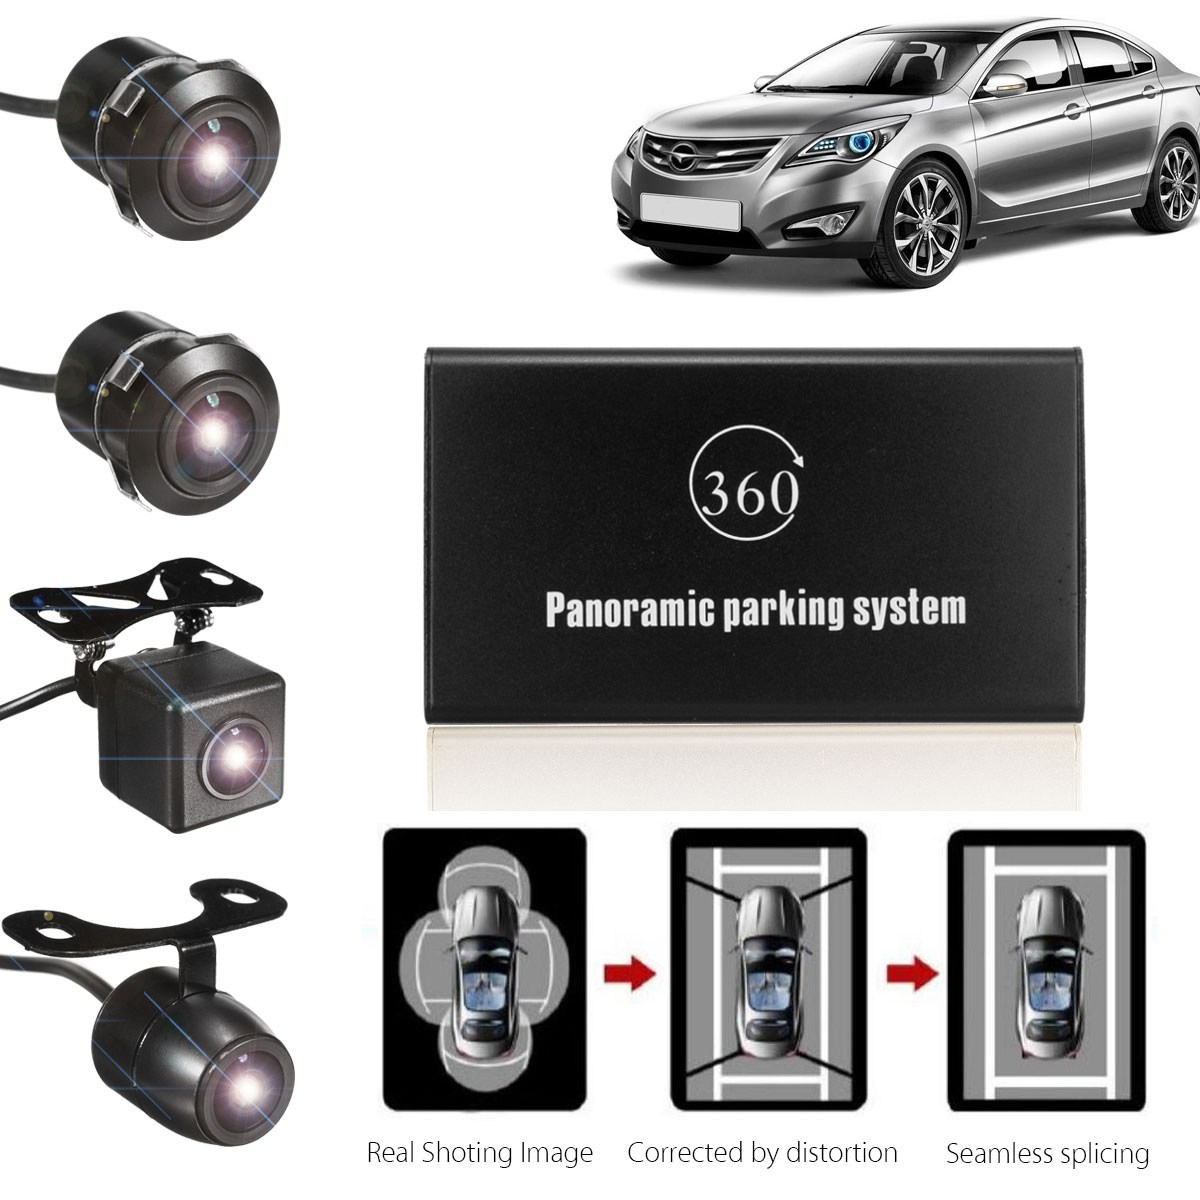 kroak 360 degree bird view panoramic system 4 camera car dvr recording parking rear view cam in. Black Bedroom Furniture Sets. Home Design Ideas